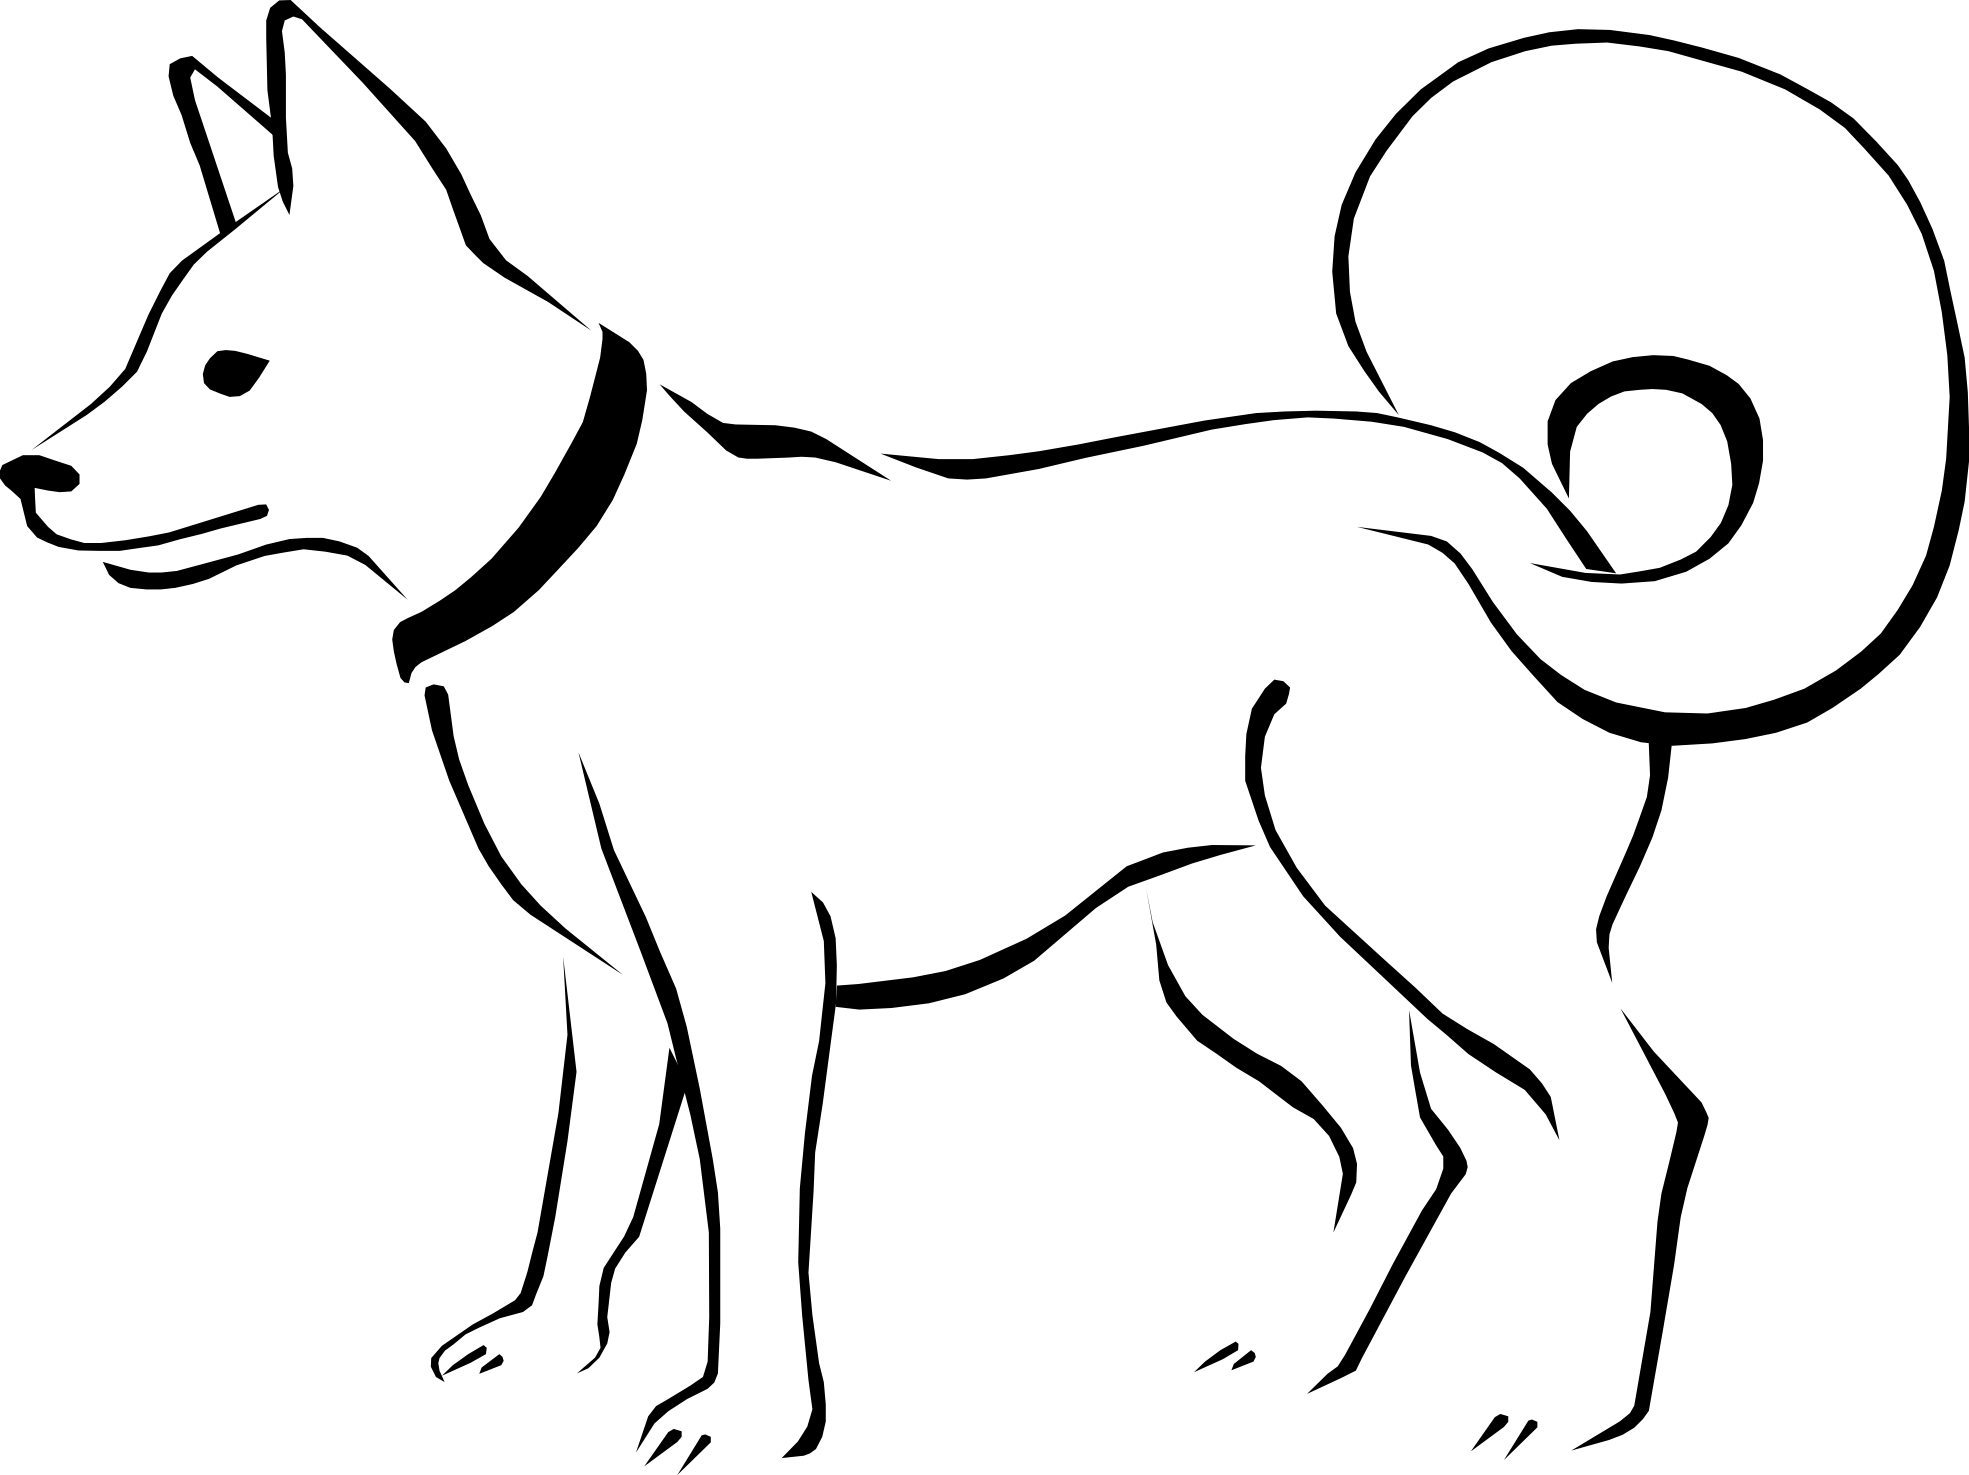 Clip art whiteblack blackandwhitedogclipartblackandwhiteblackandwhitedog. Dogs in a dog house clipart black and white